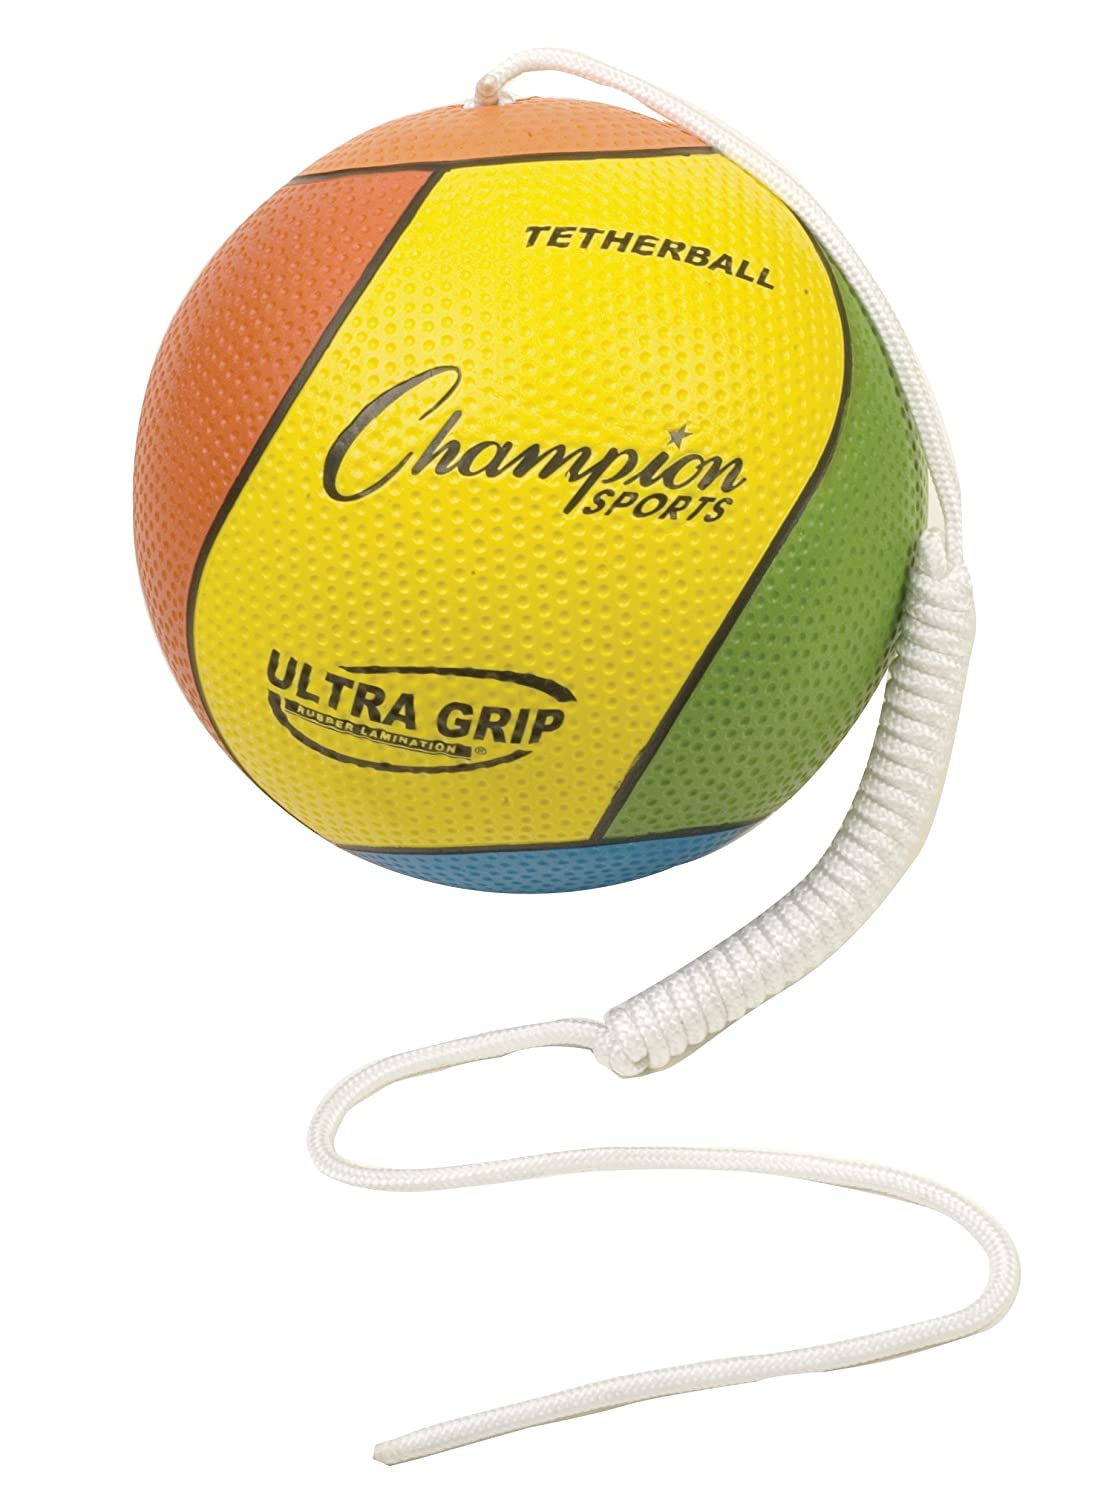 Champion Sports Ultra Grip Tether Ball VTBS